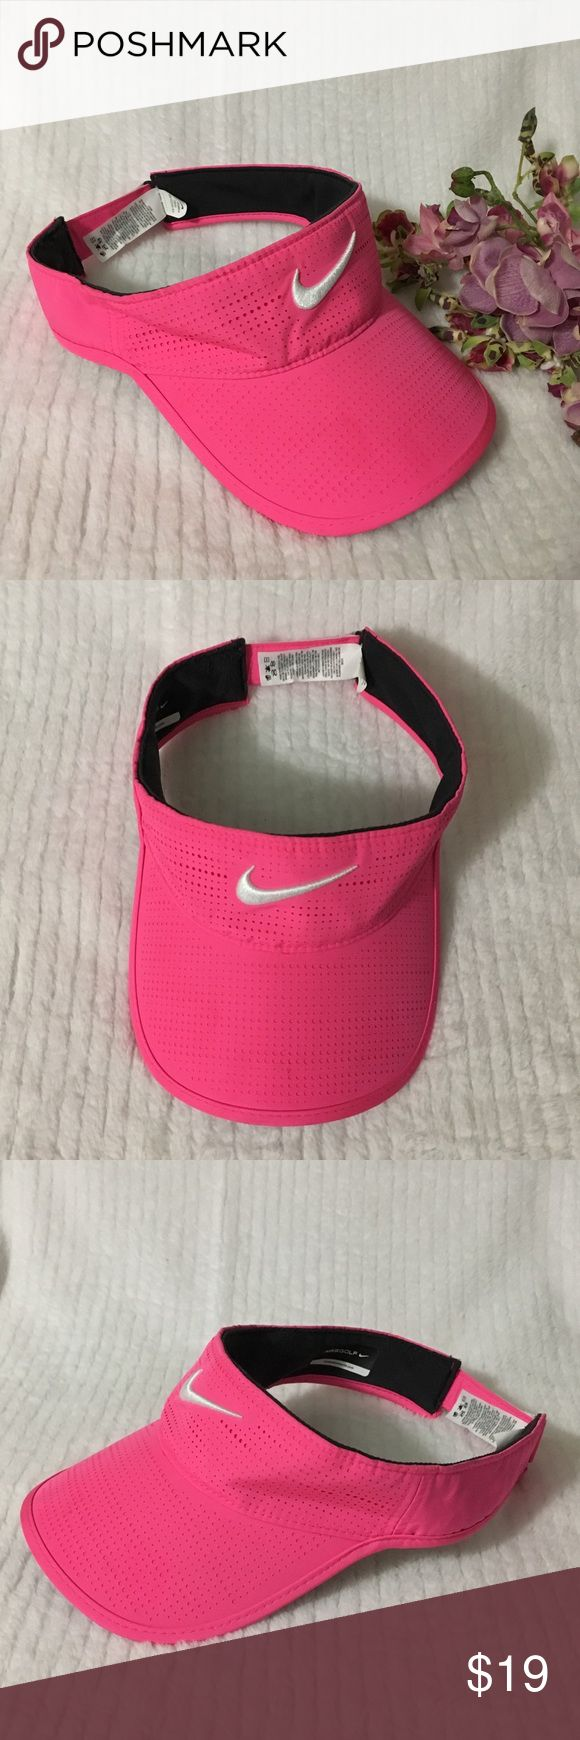 Nike Golf Hot Pink Sun Visor Hat NIKE Golf Hot Pink Sun visor Hat. One Size fits most. Worn once. Inner back near the adjustable strap has minor scuff. Pls see photos. Materials: 100% Polyester  🚫Swap🚫Trade ✅Bundle & Save 🤗Reasonable offers are welcome Nike Accessories Hats